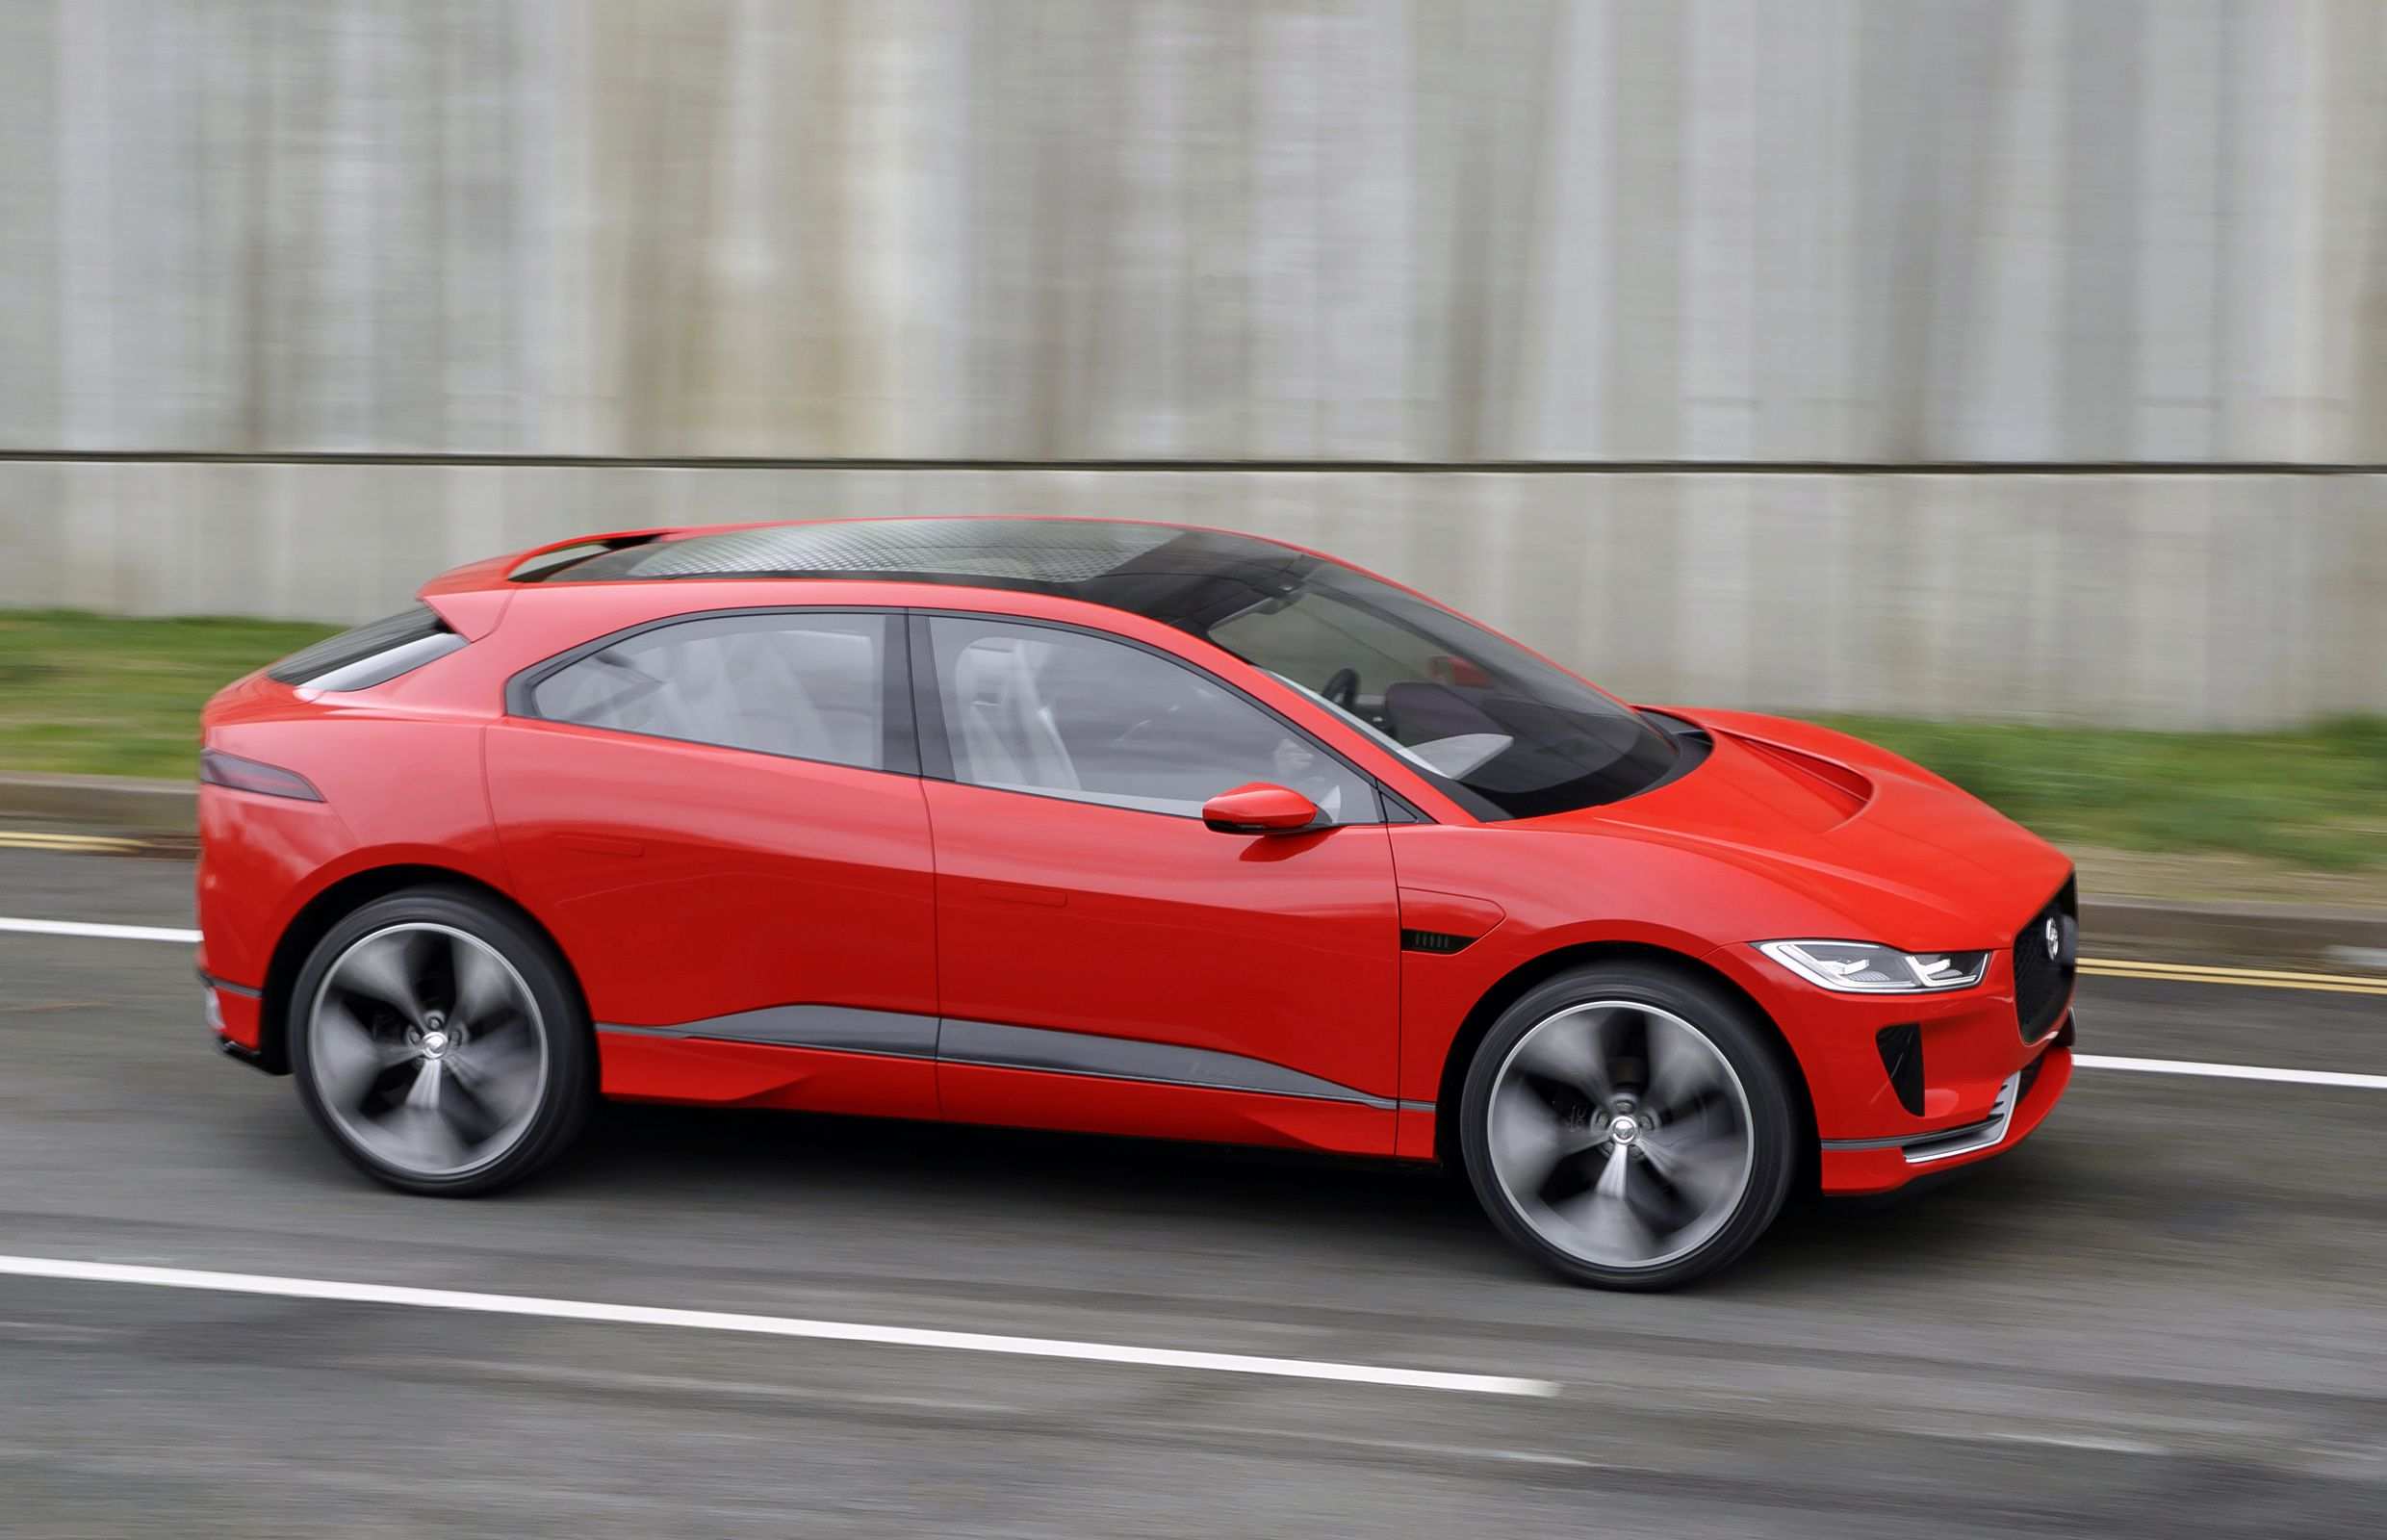 jag ipace conceptdynamic150317020